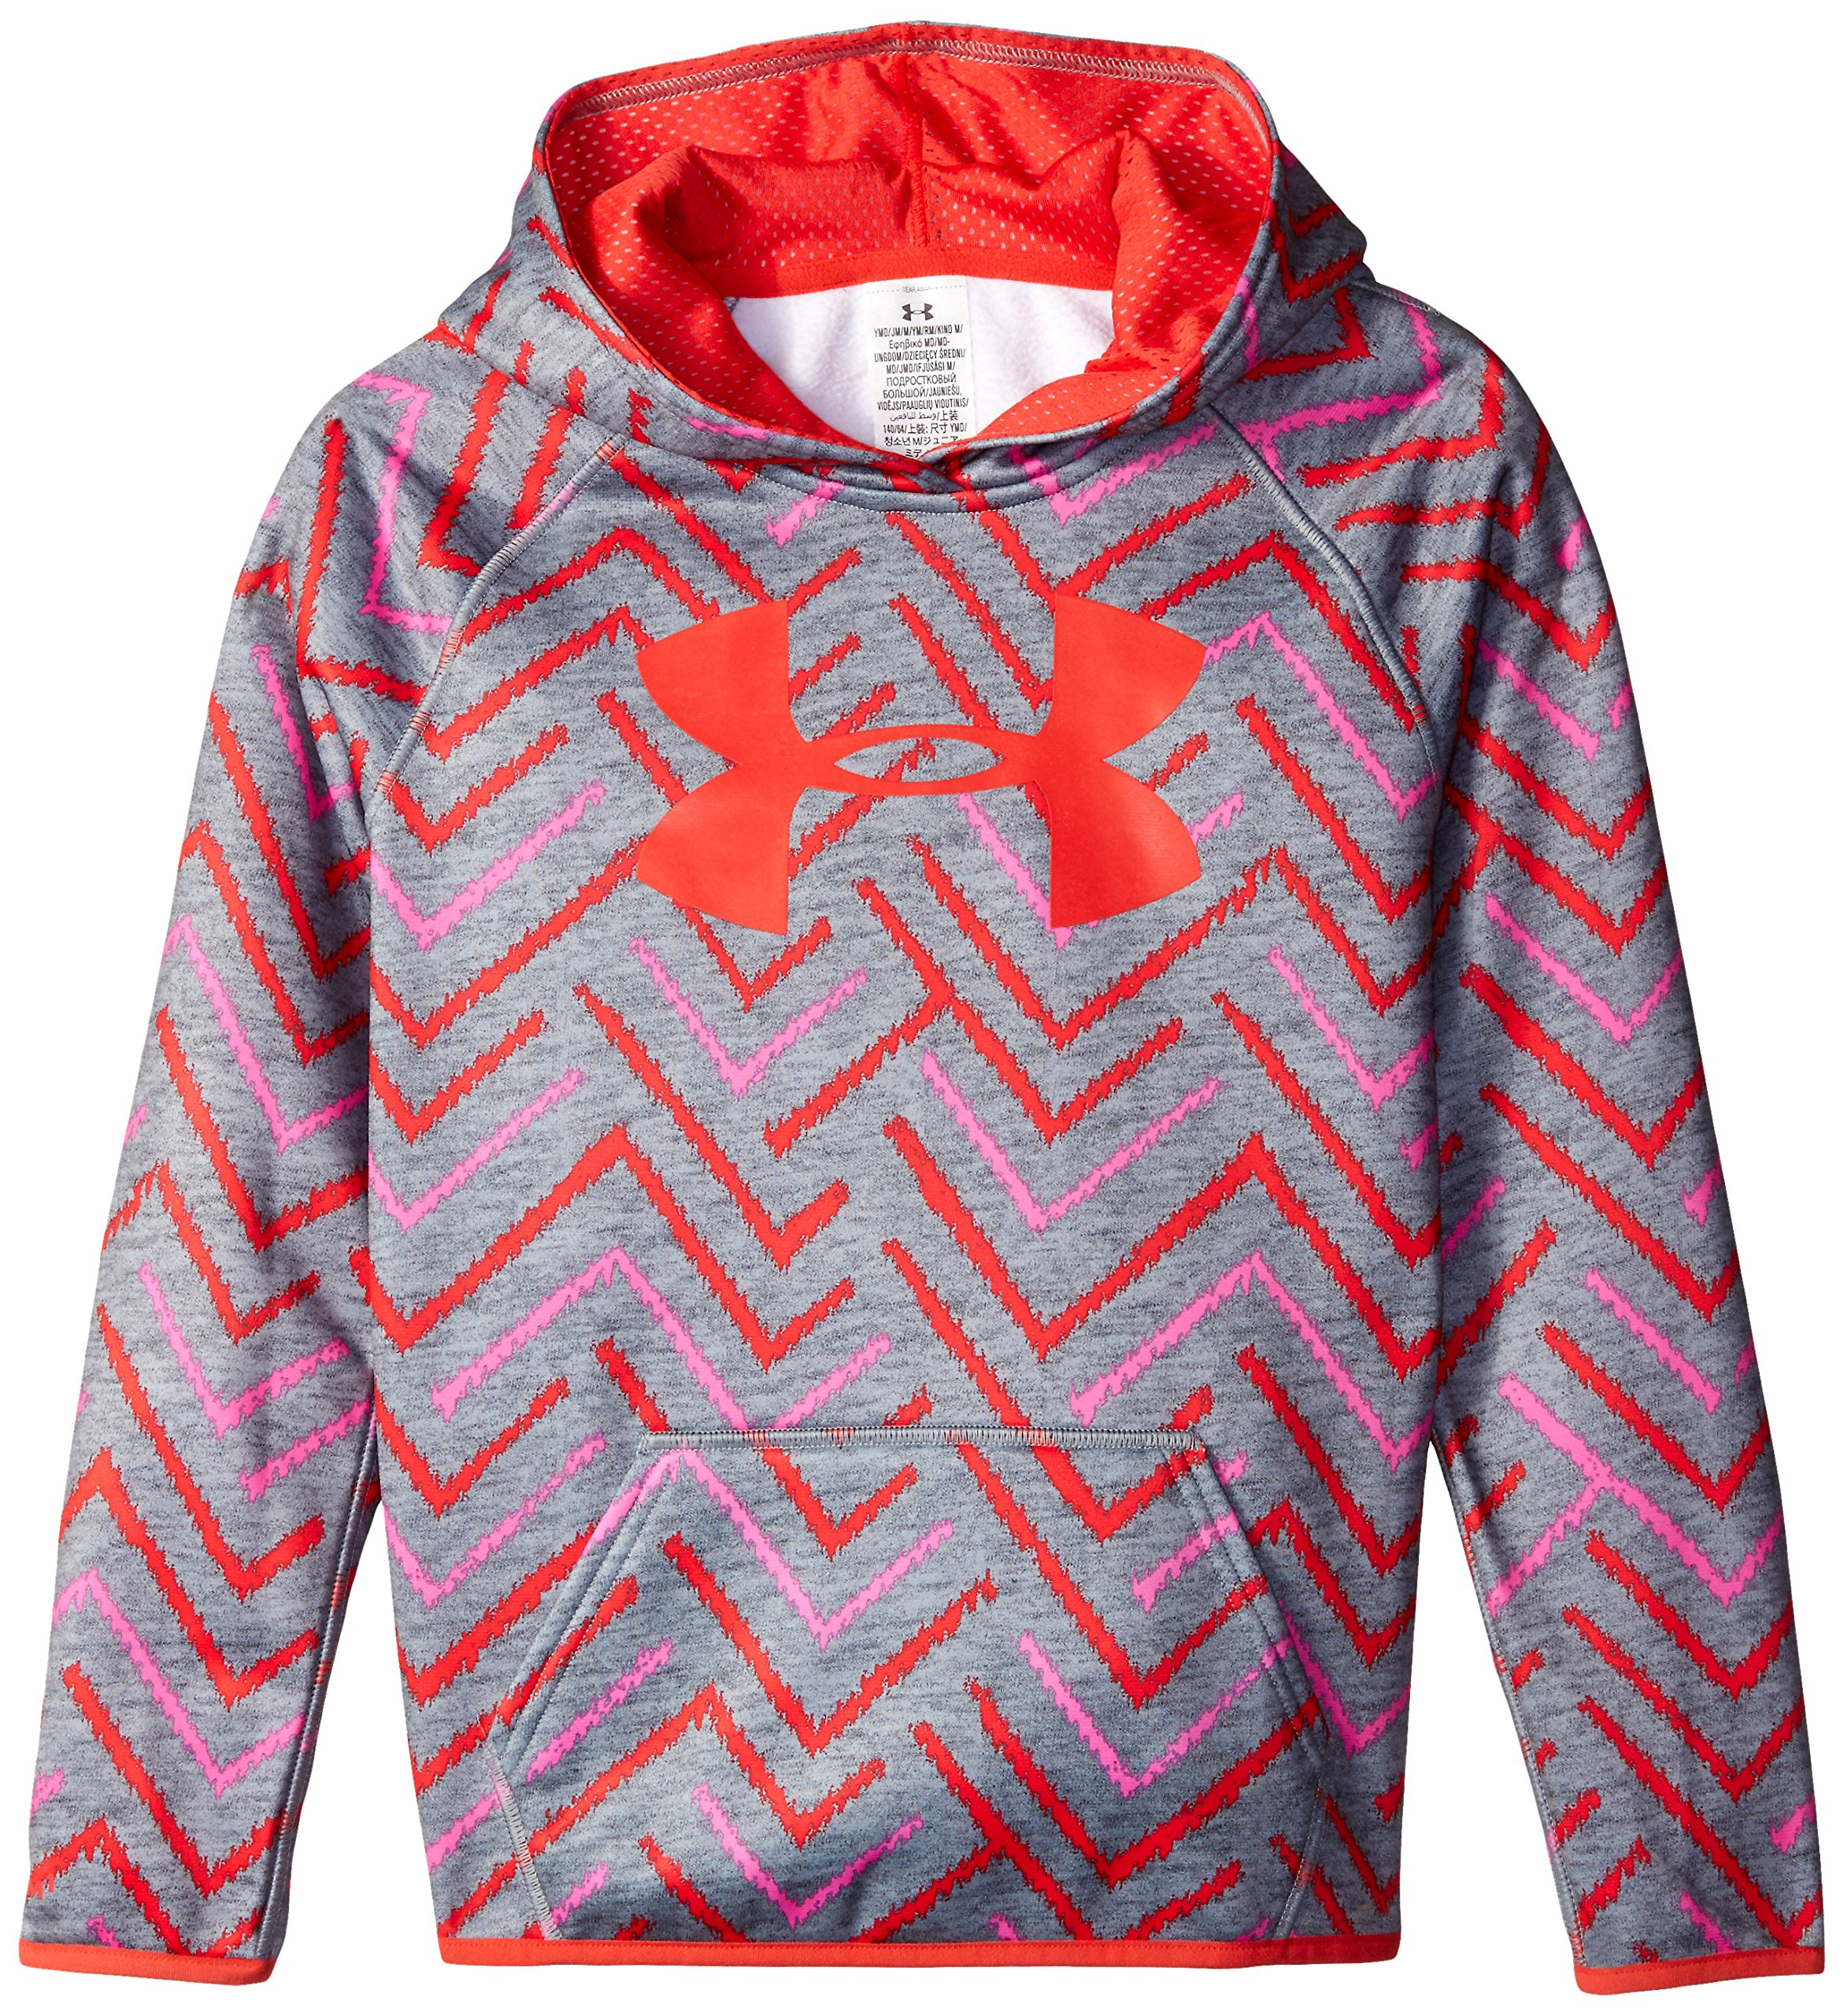 Under Armour Women's Armour Fleece Printed Big Logo Hoodie, True Gray Heather /Pomegranate, Youth X-Large by Under Armour